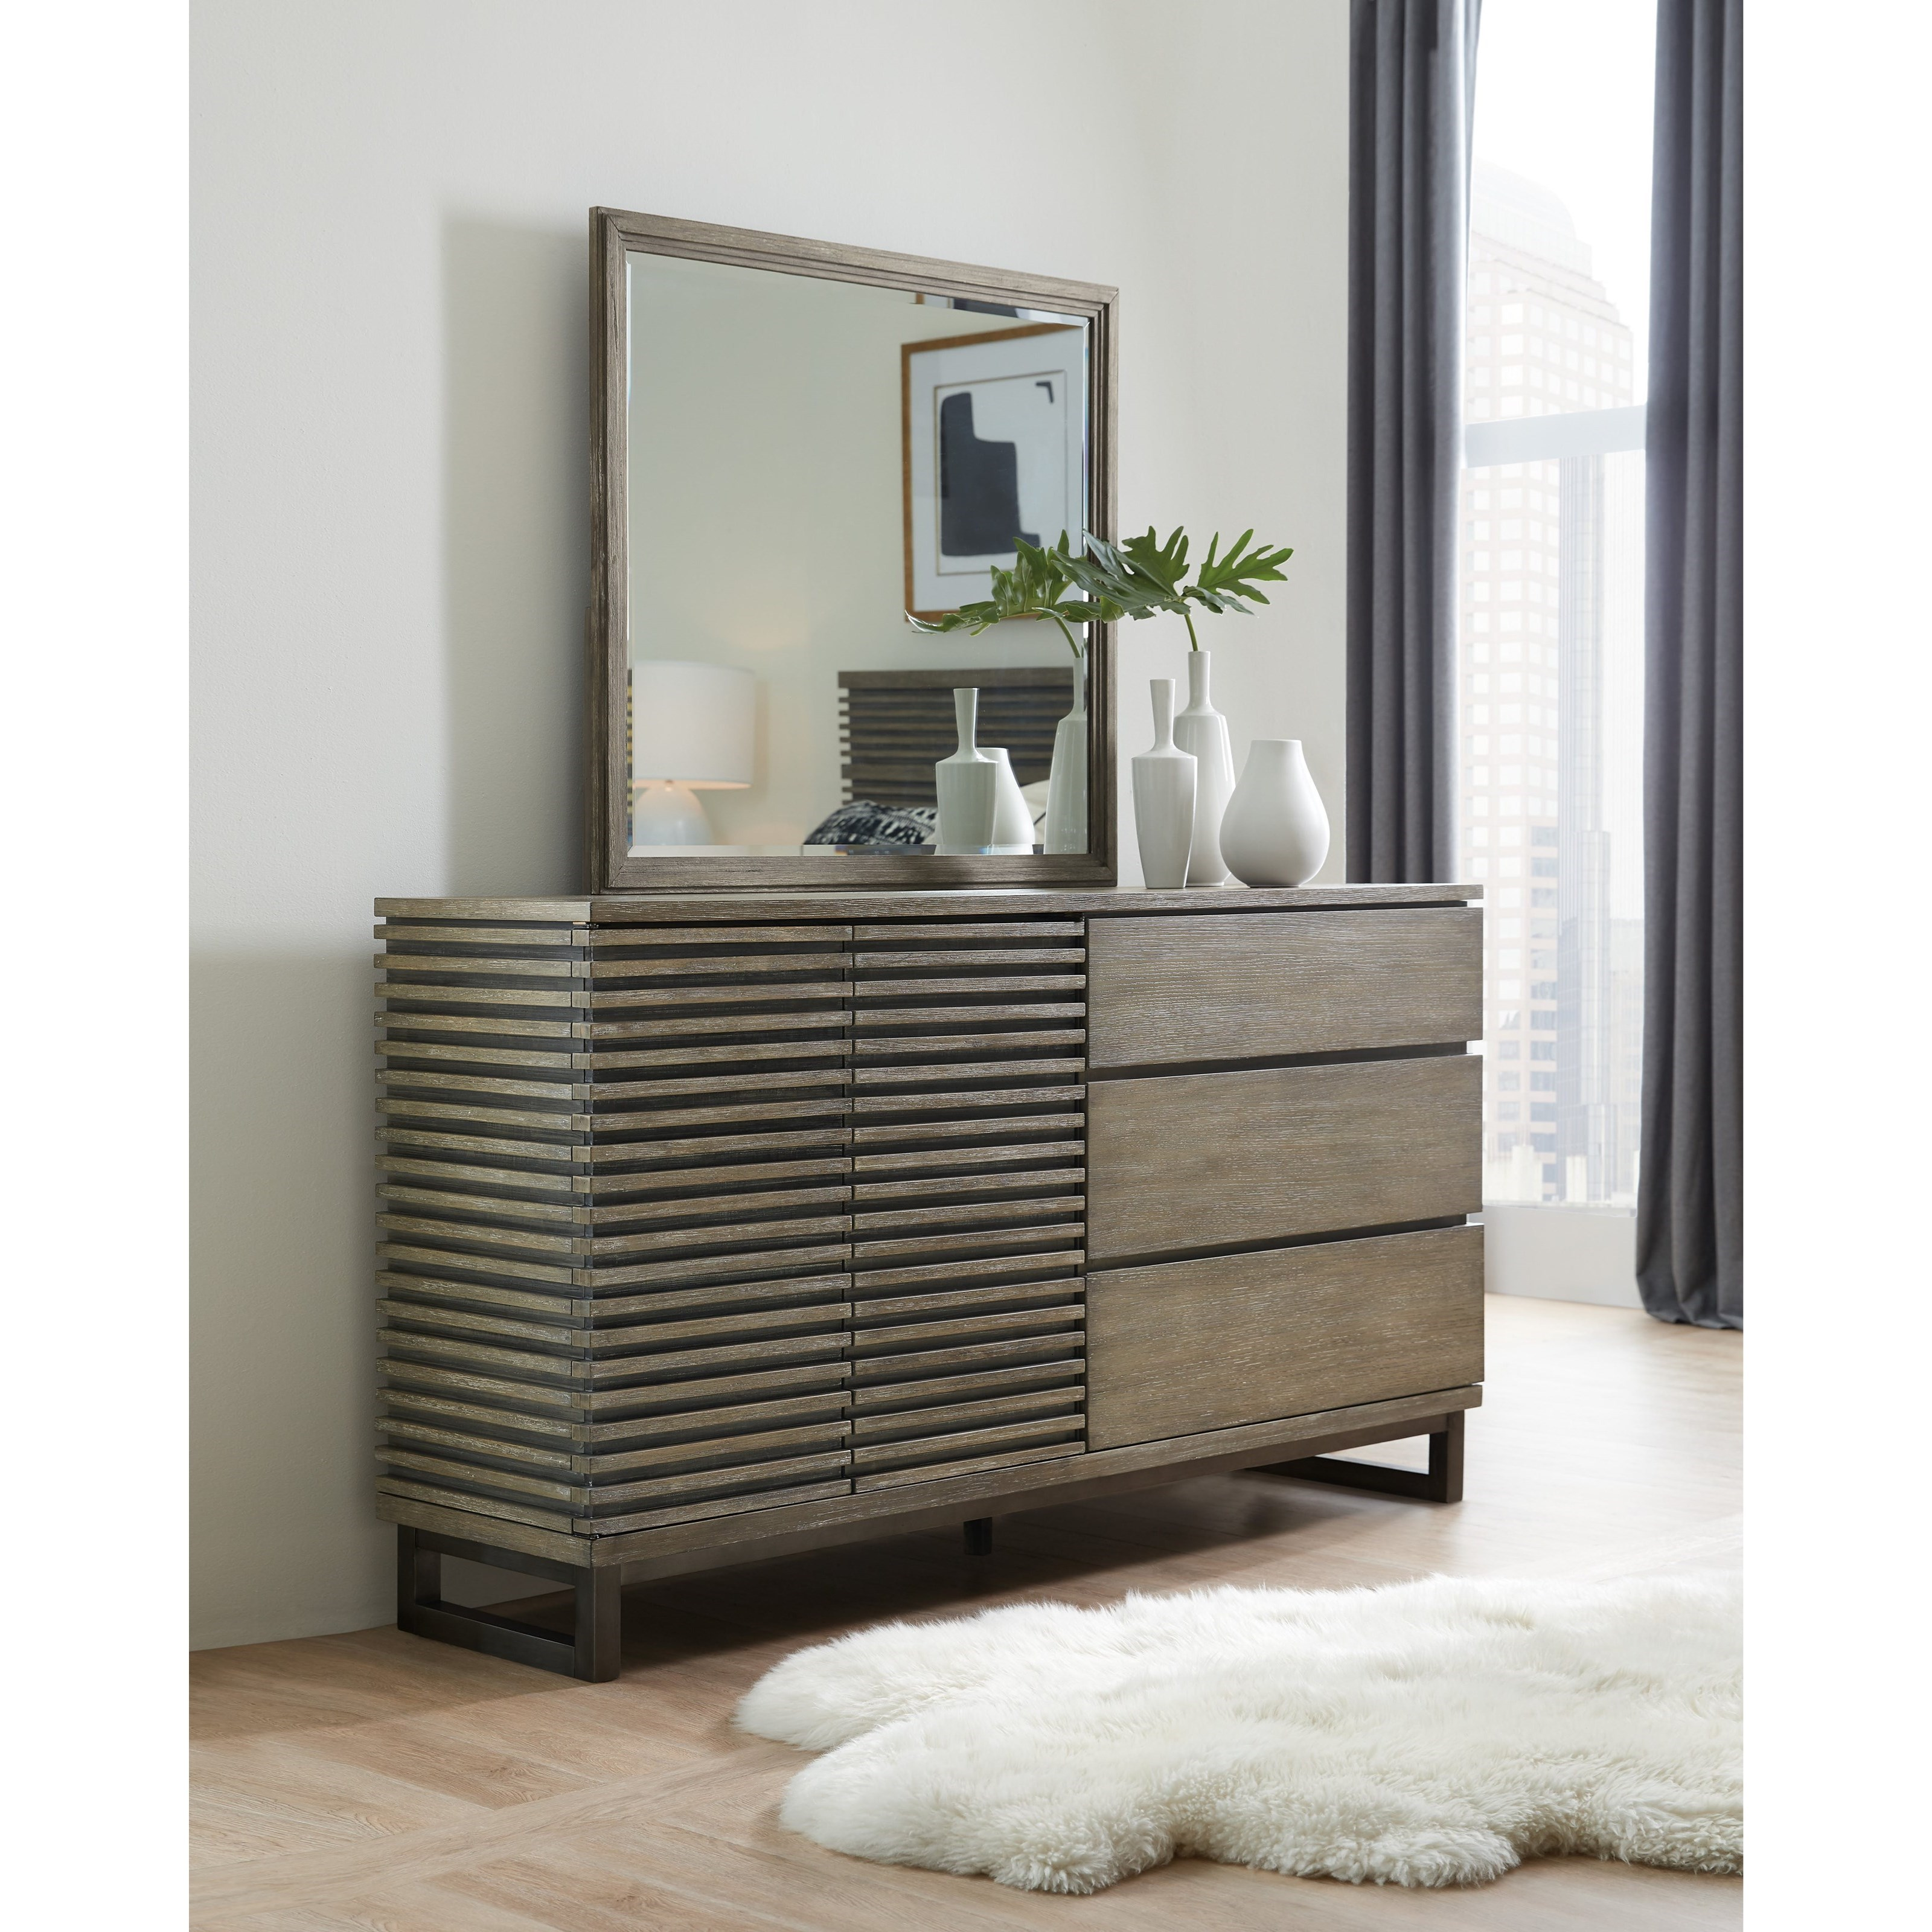 Annex Dresser and Mirror Set by Hooker Furniture at Fisher Home Furnishings